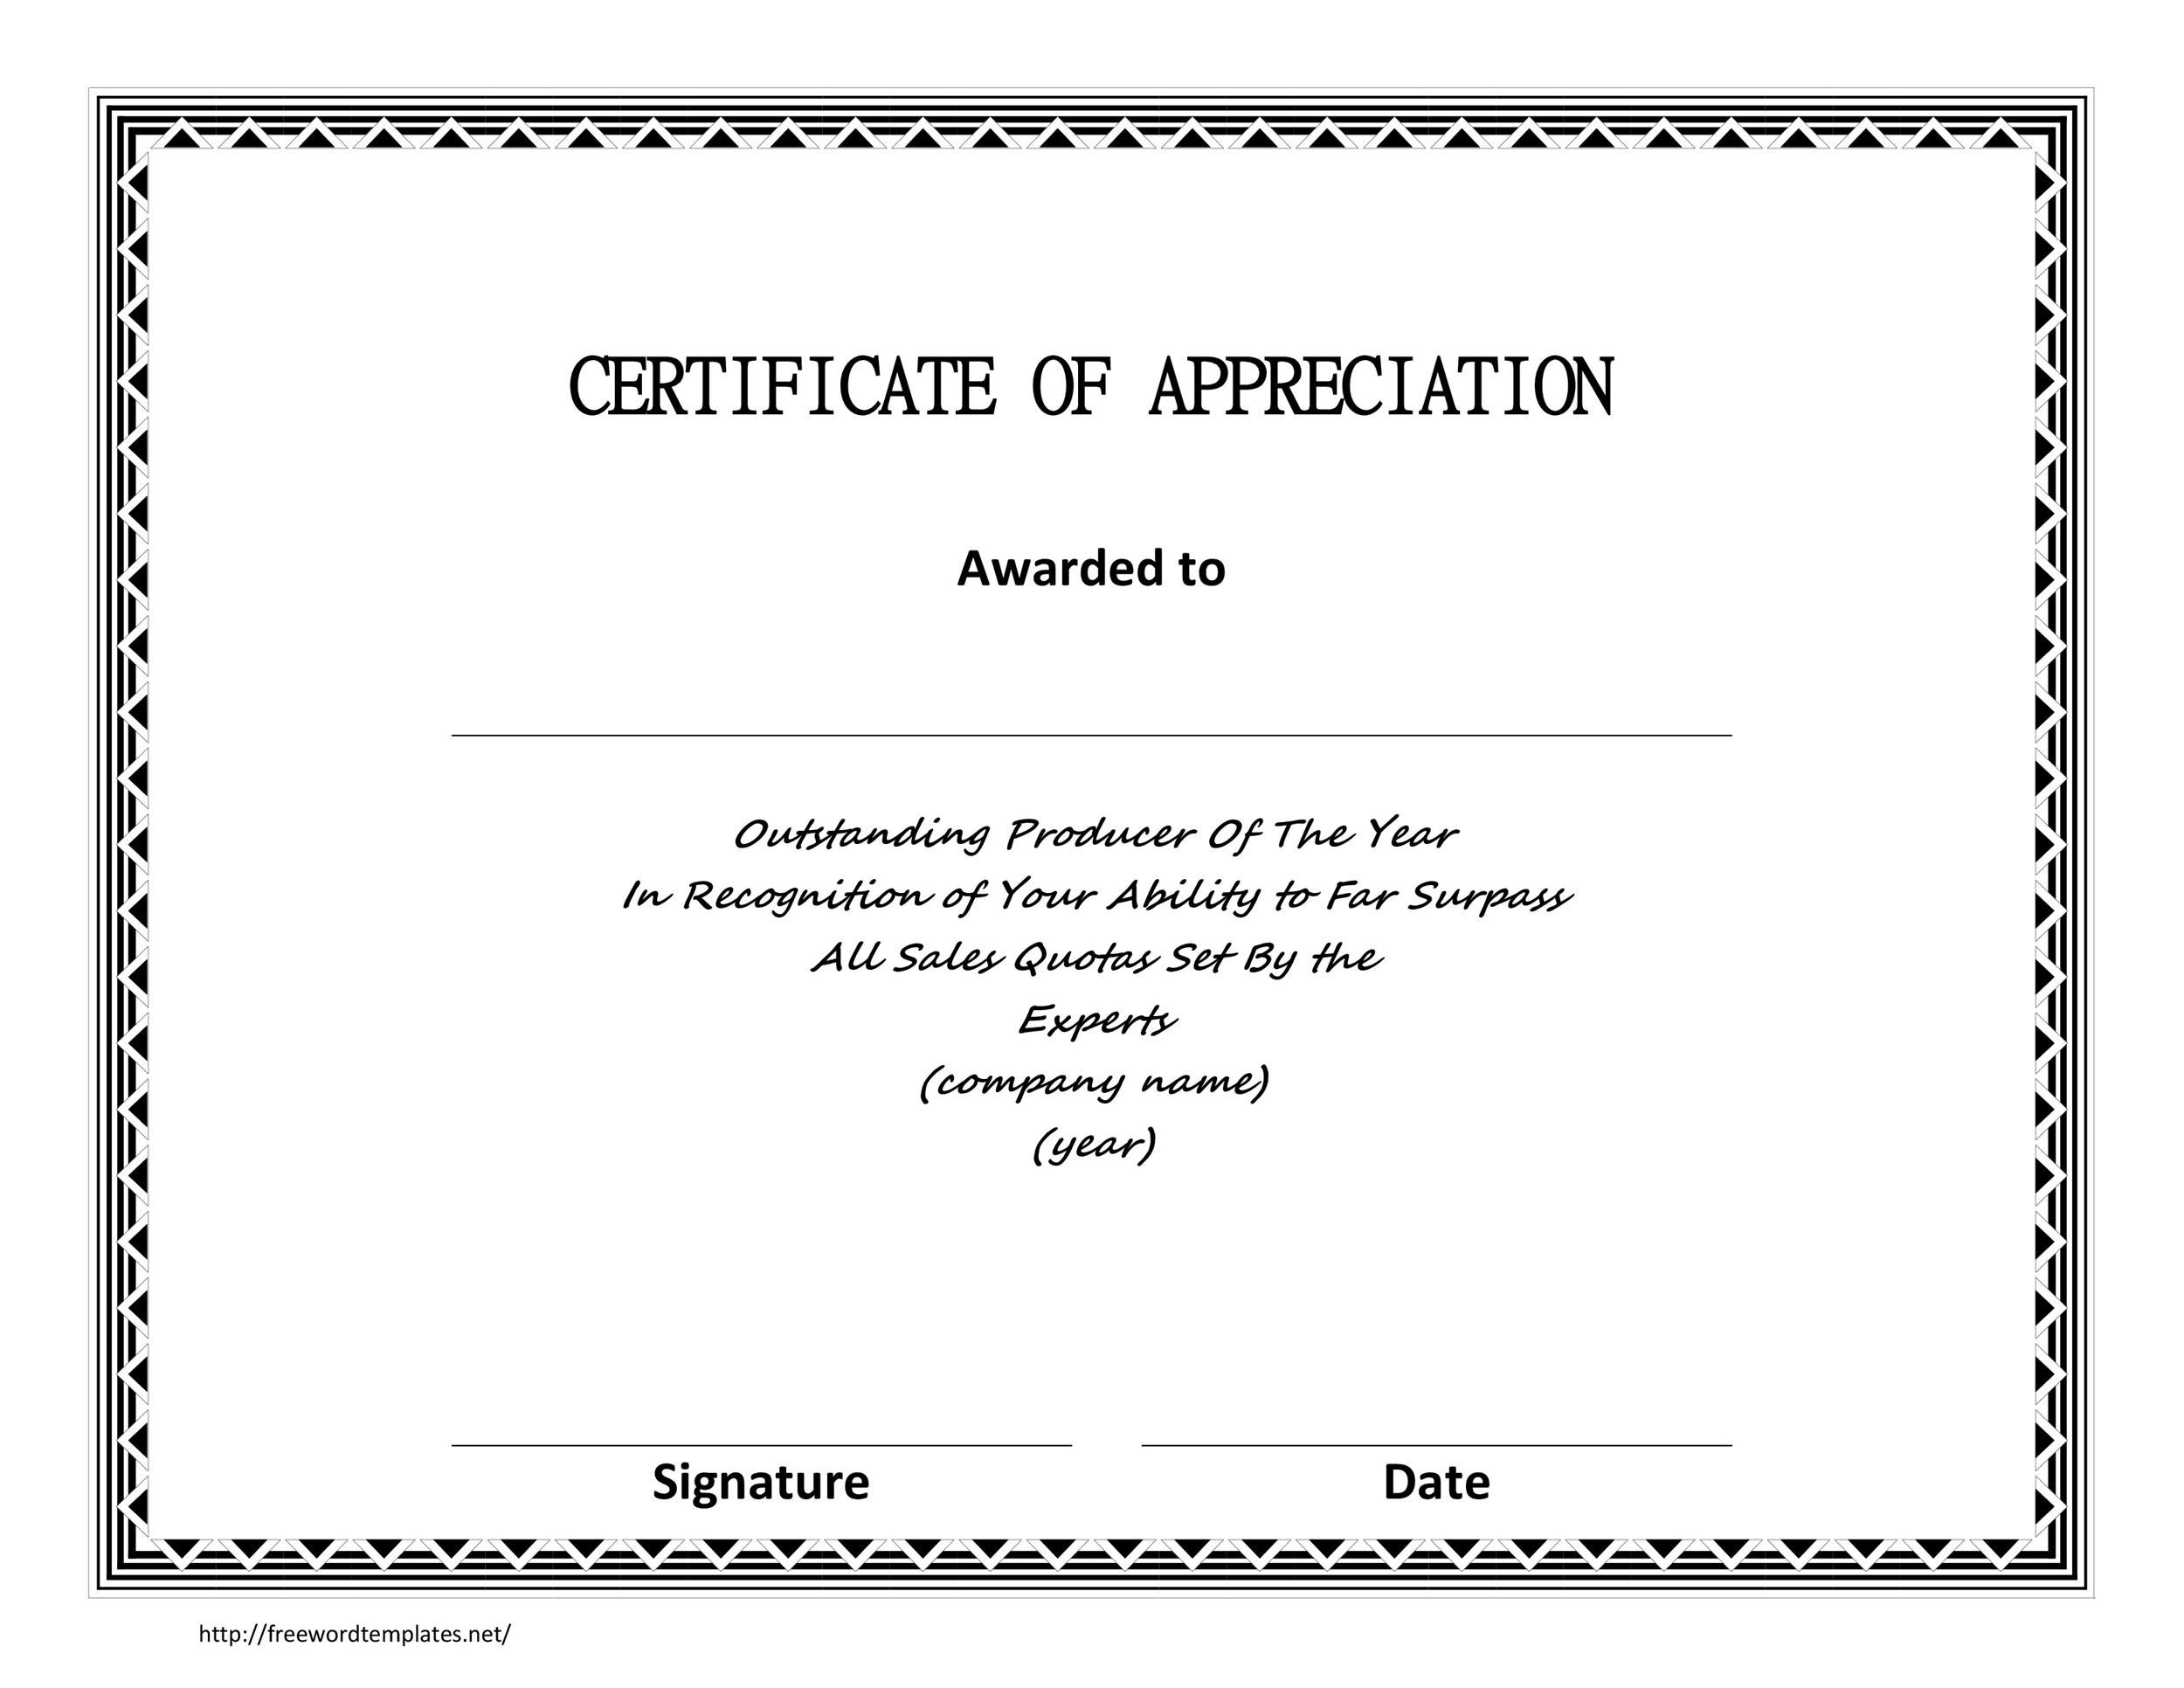 30 free certificate of appreciation templates and letters printable certificate of appreciation 06 yadclub Images